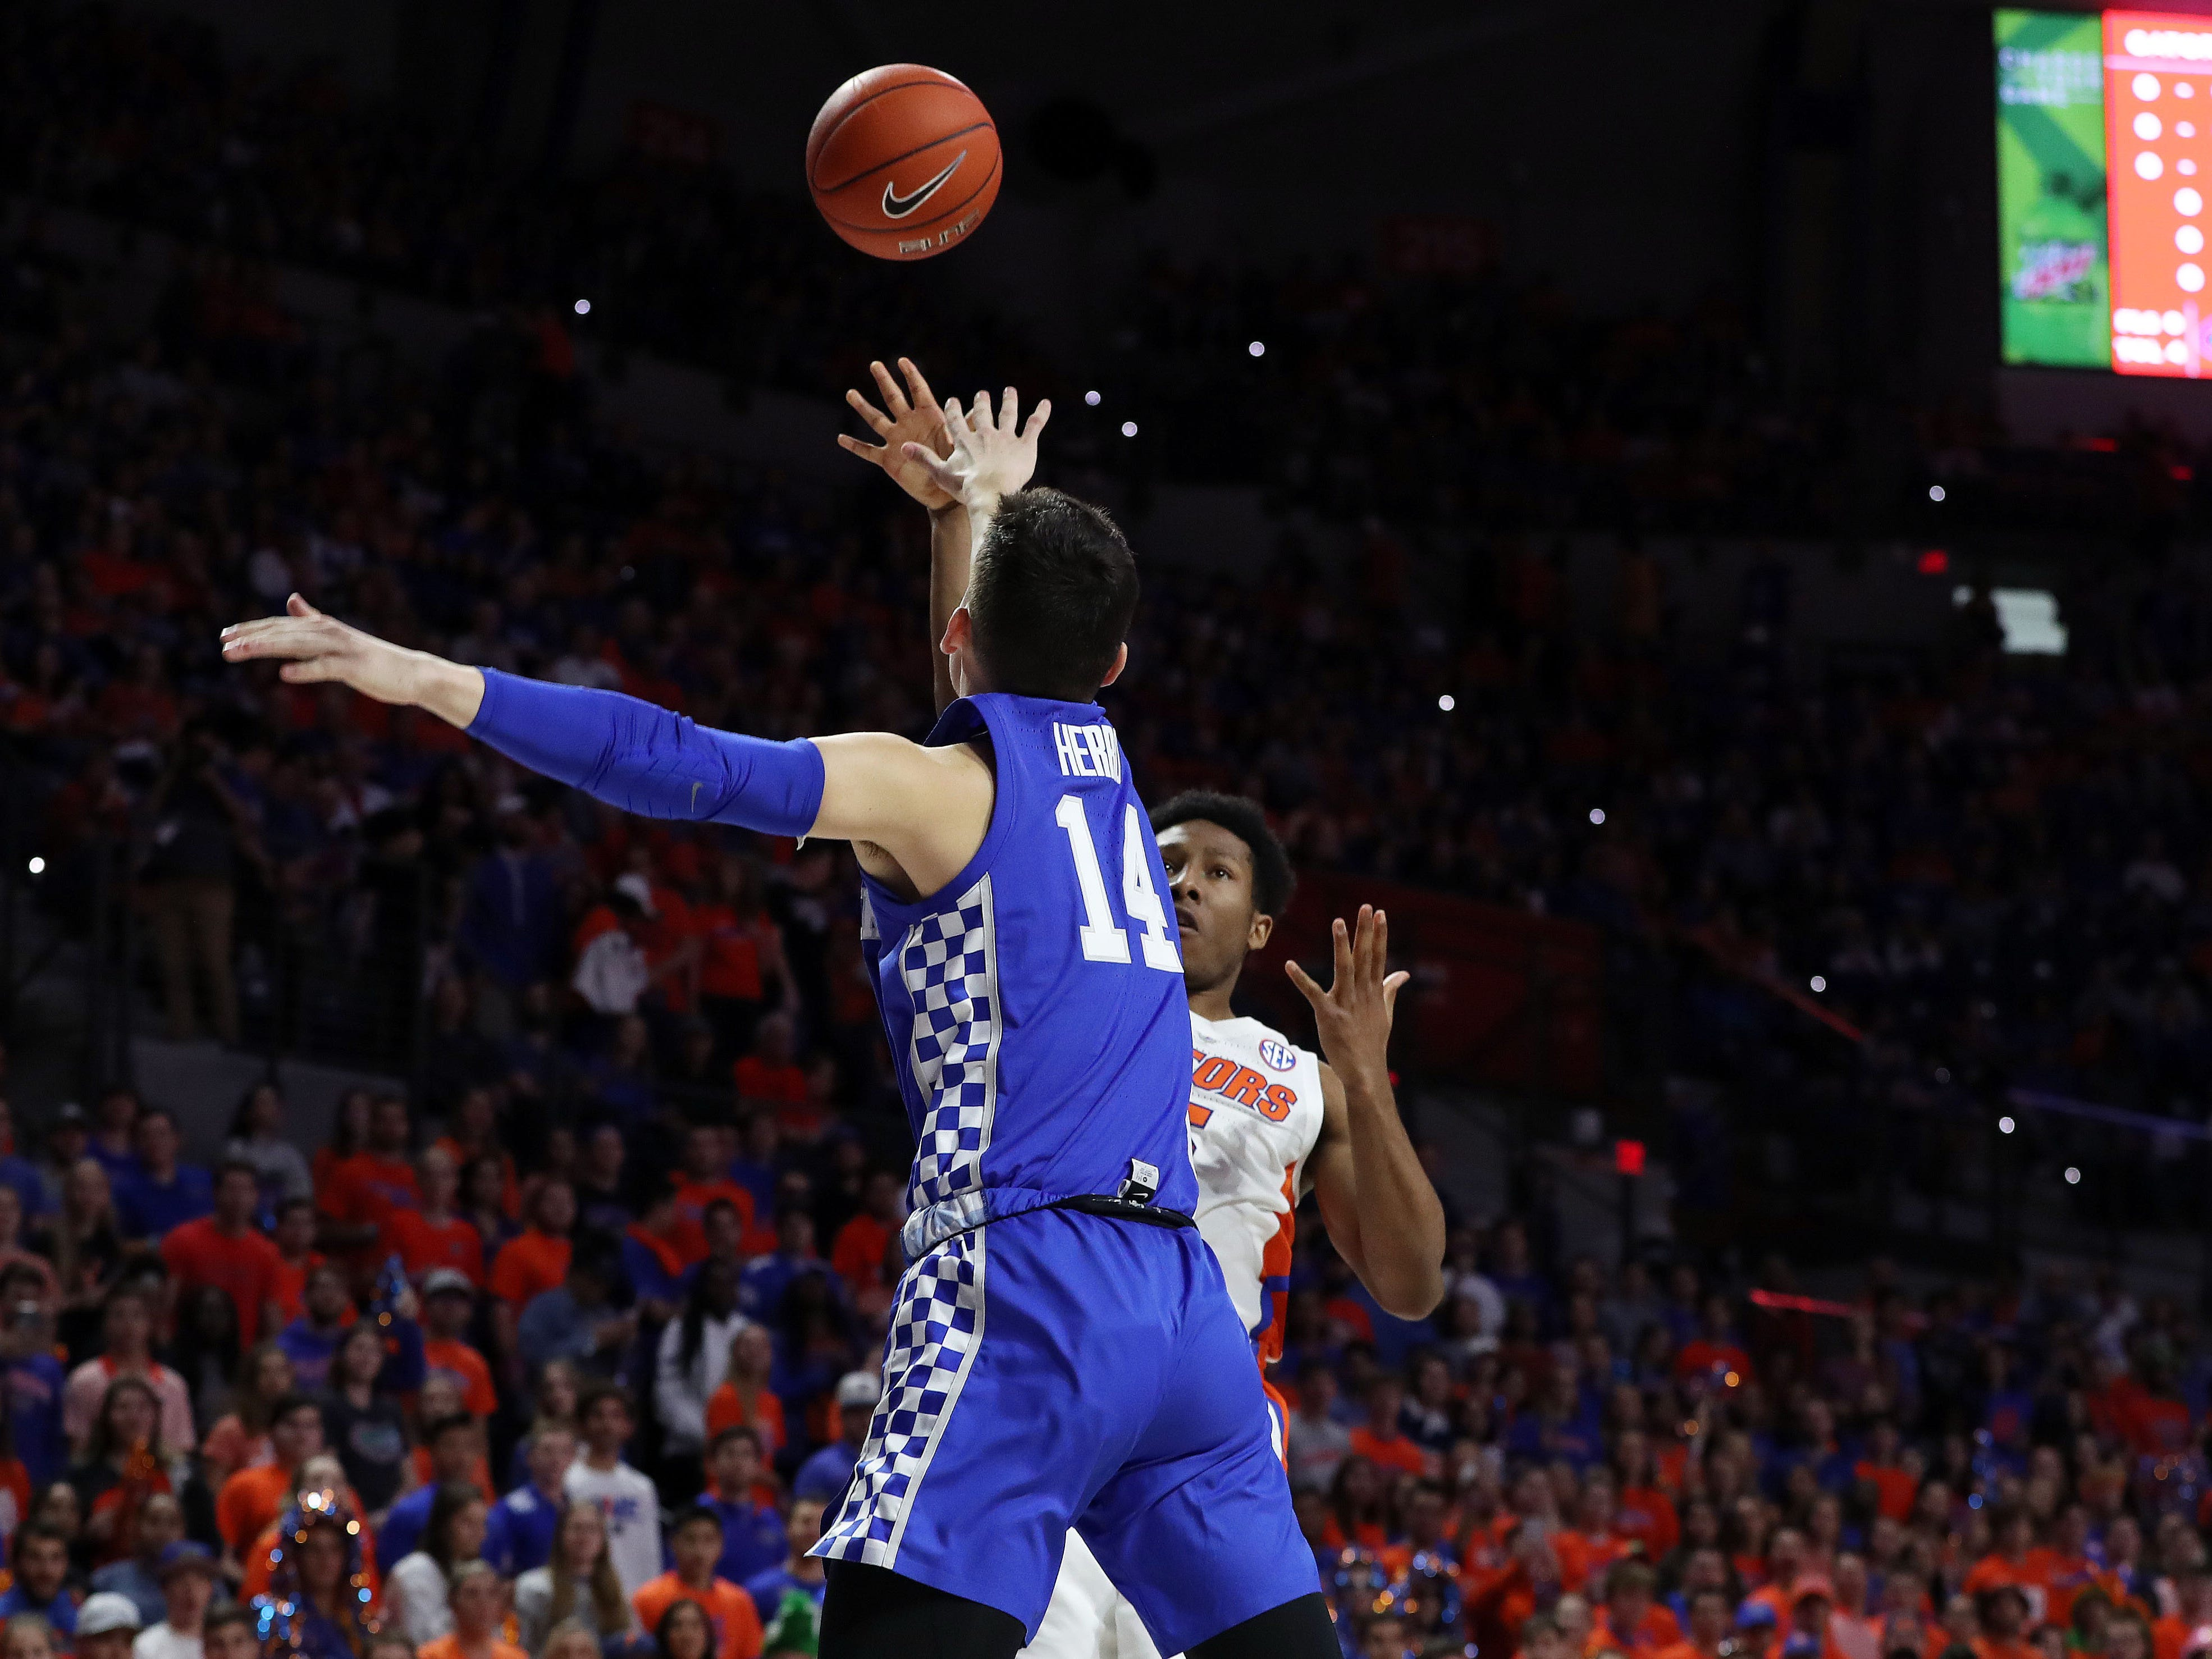 Florida Gators guard KeVaughn Allen (5) shoots over Kentucky Wildcats guard Tyler Herro (14) during the first half at Exactech Arena in Gainesville, Florida, on Saturday, Feb. 2, 2019.